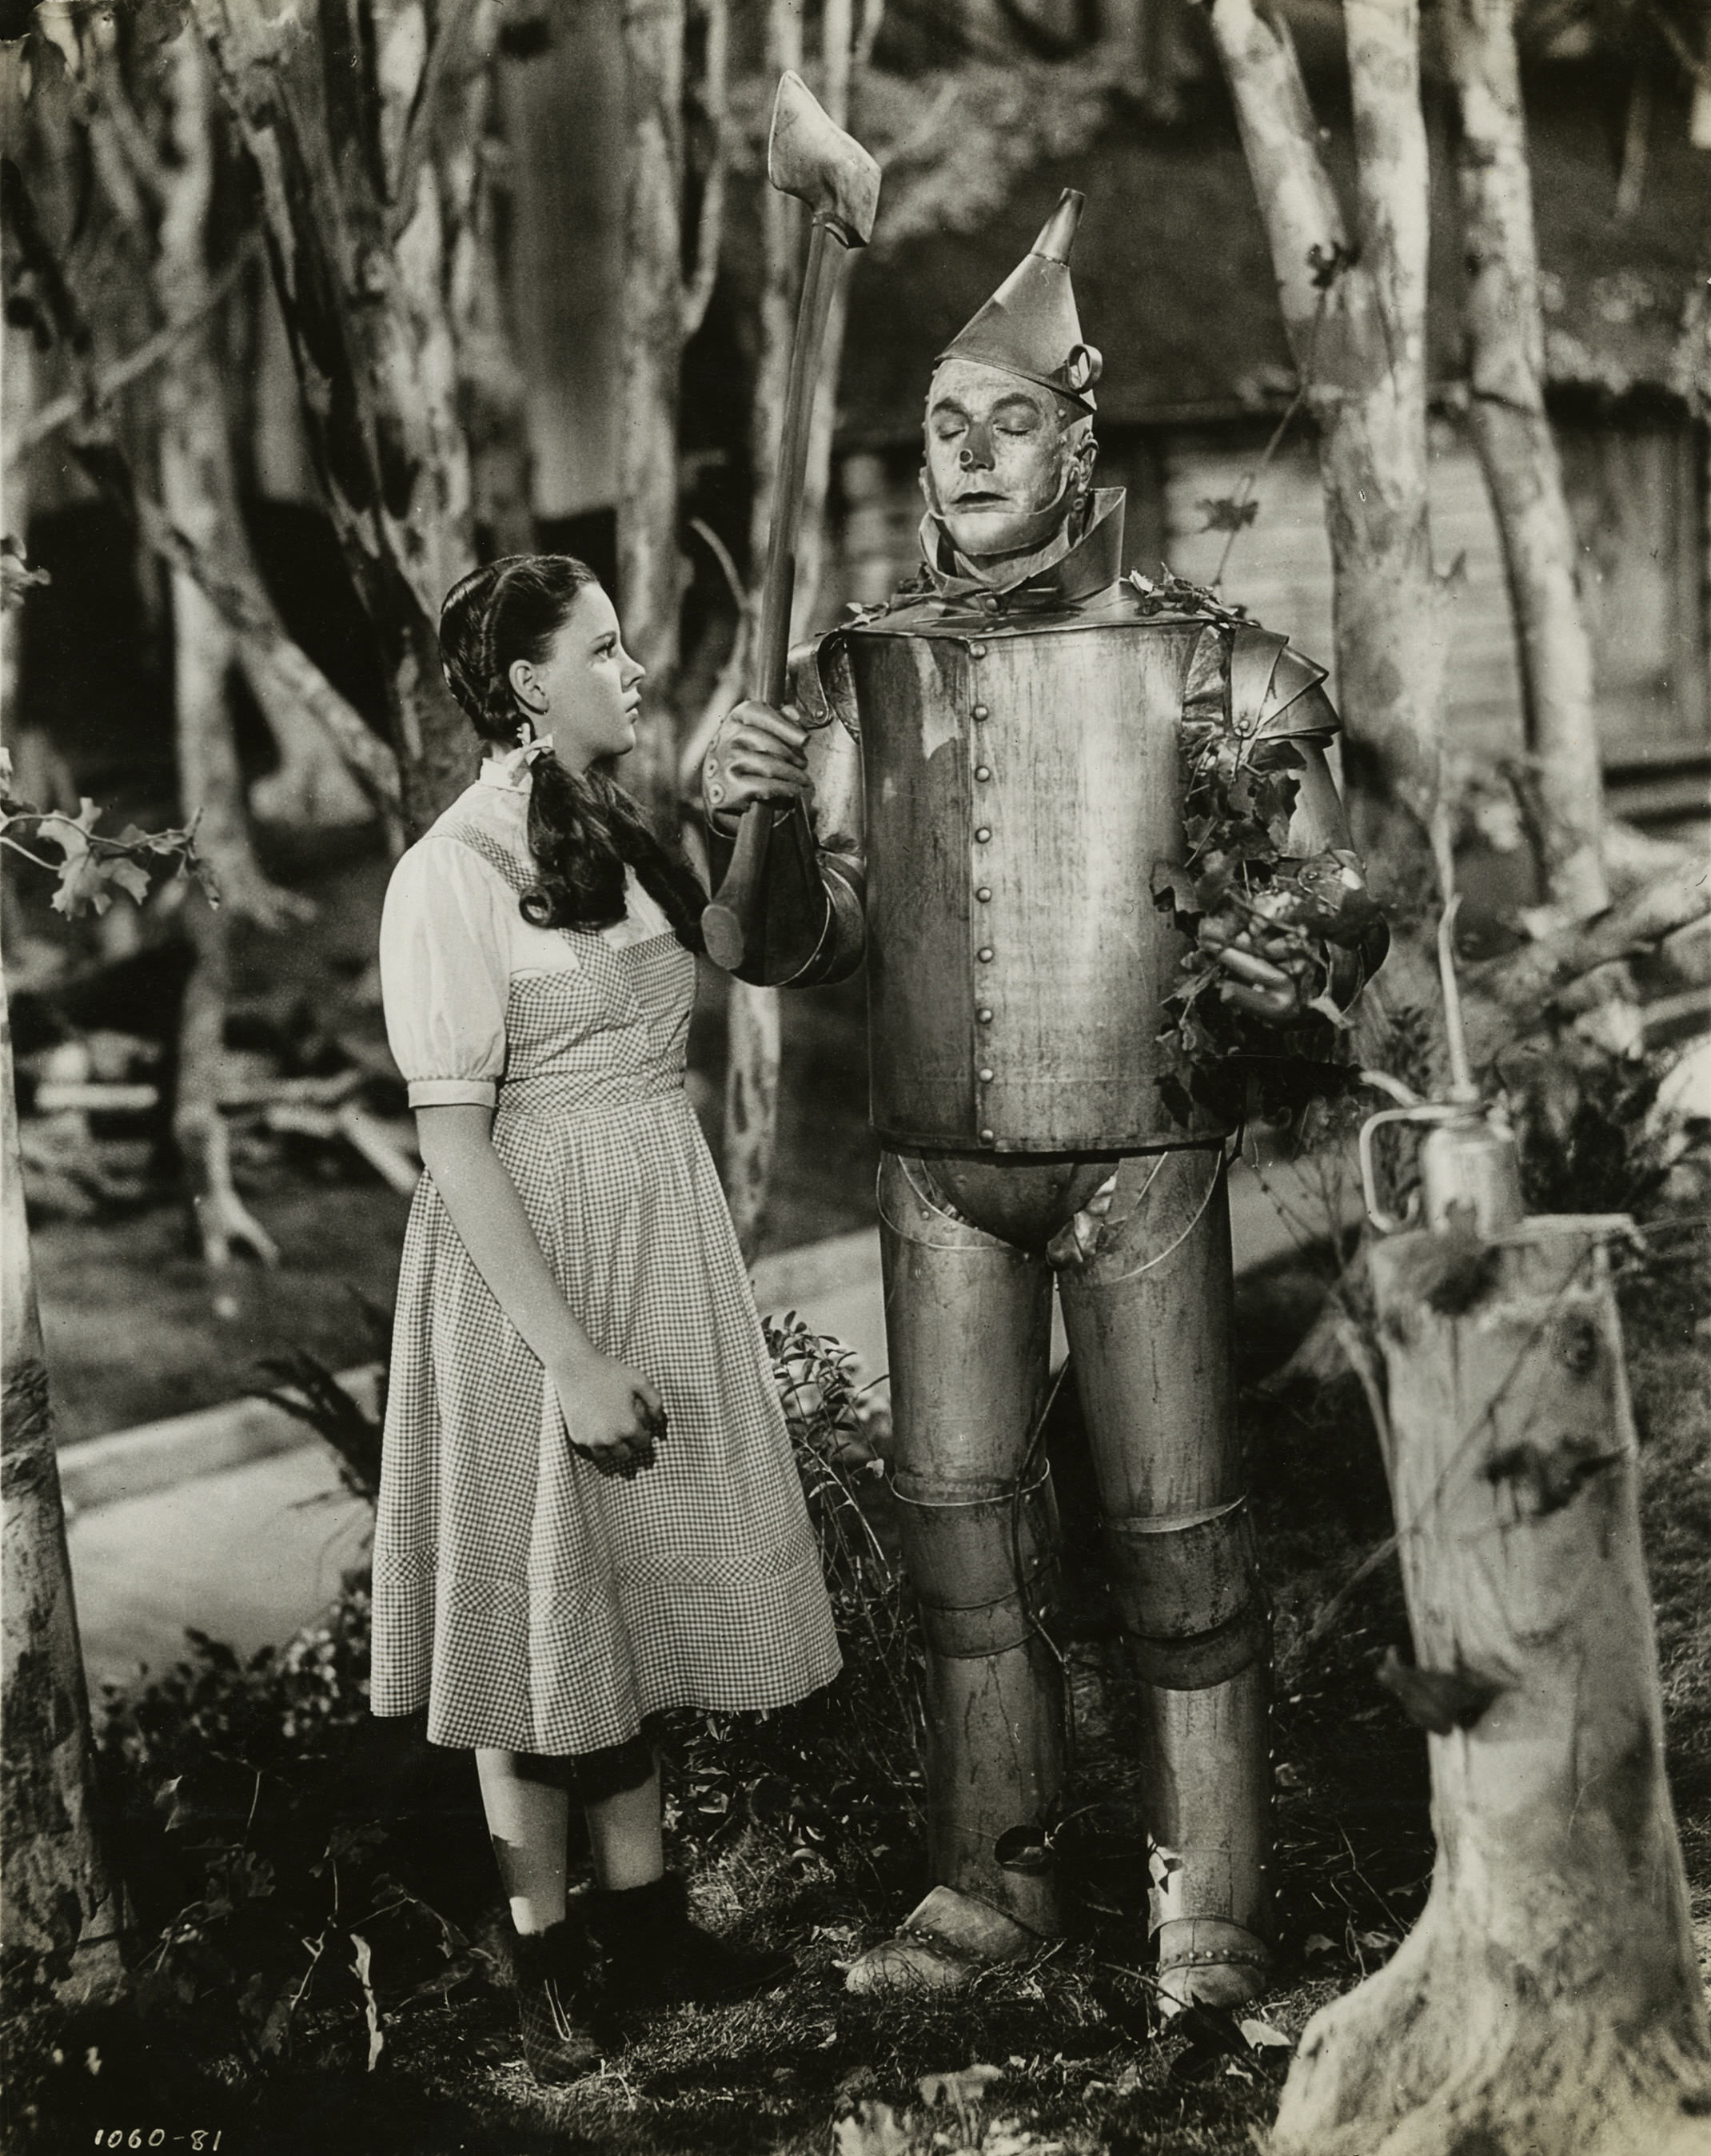 Wizard Of Oz, The (1939